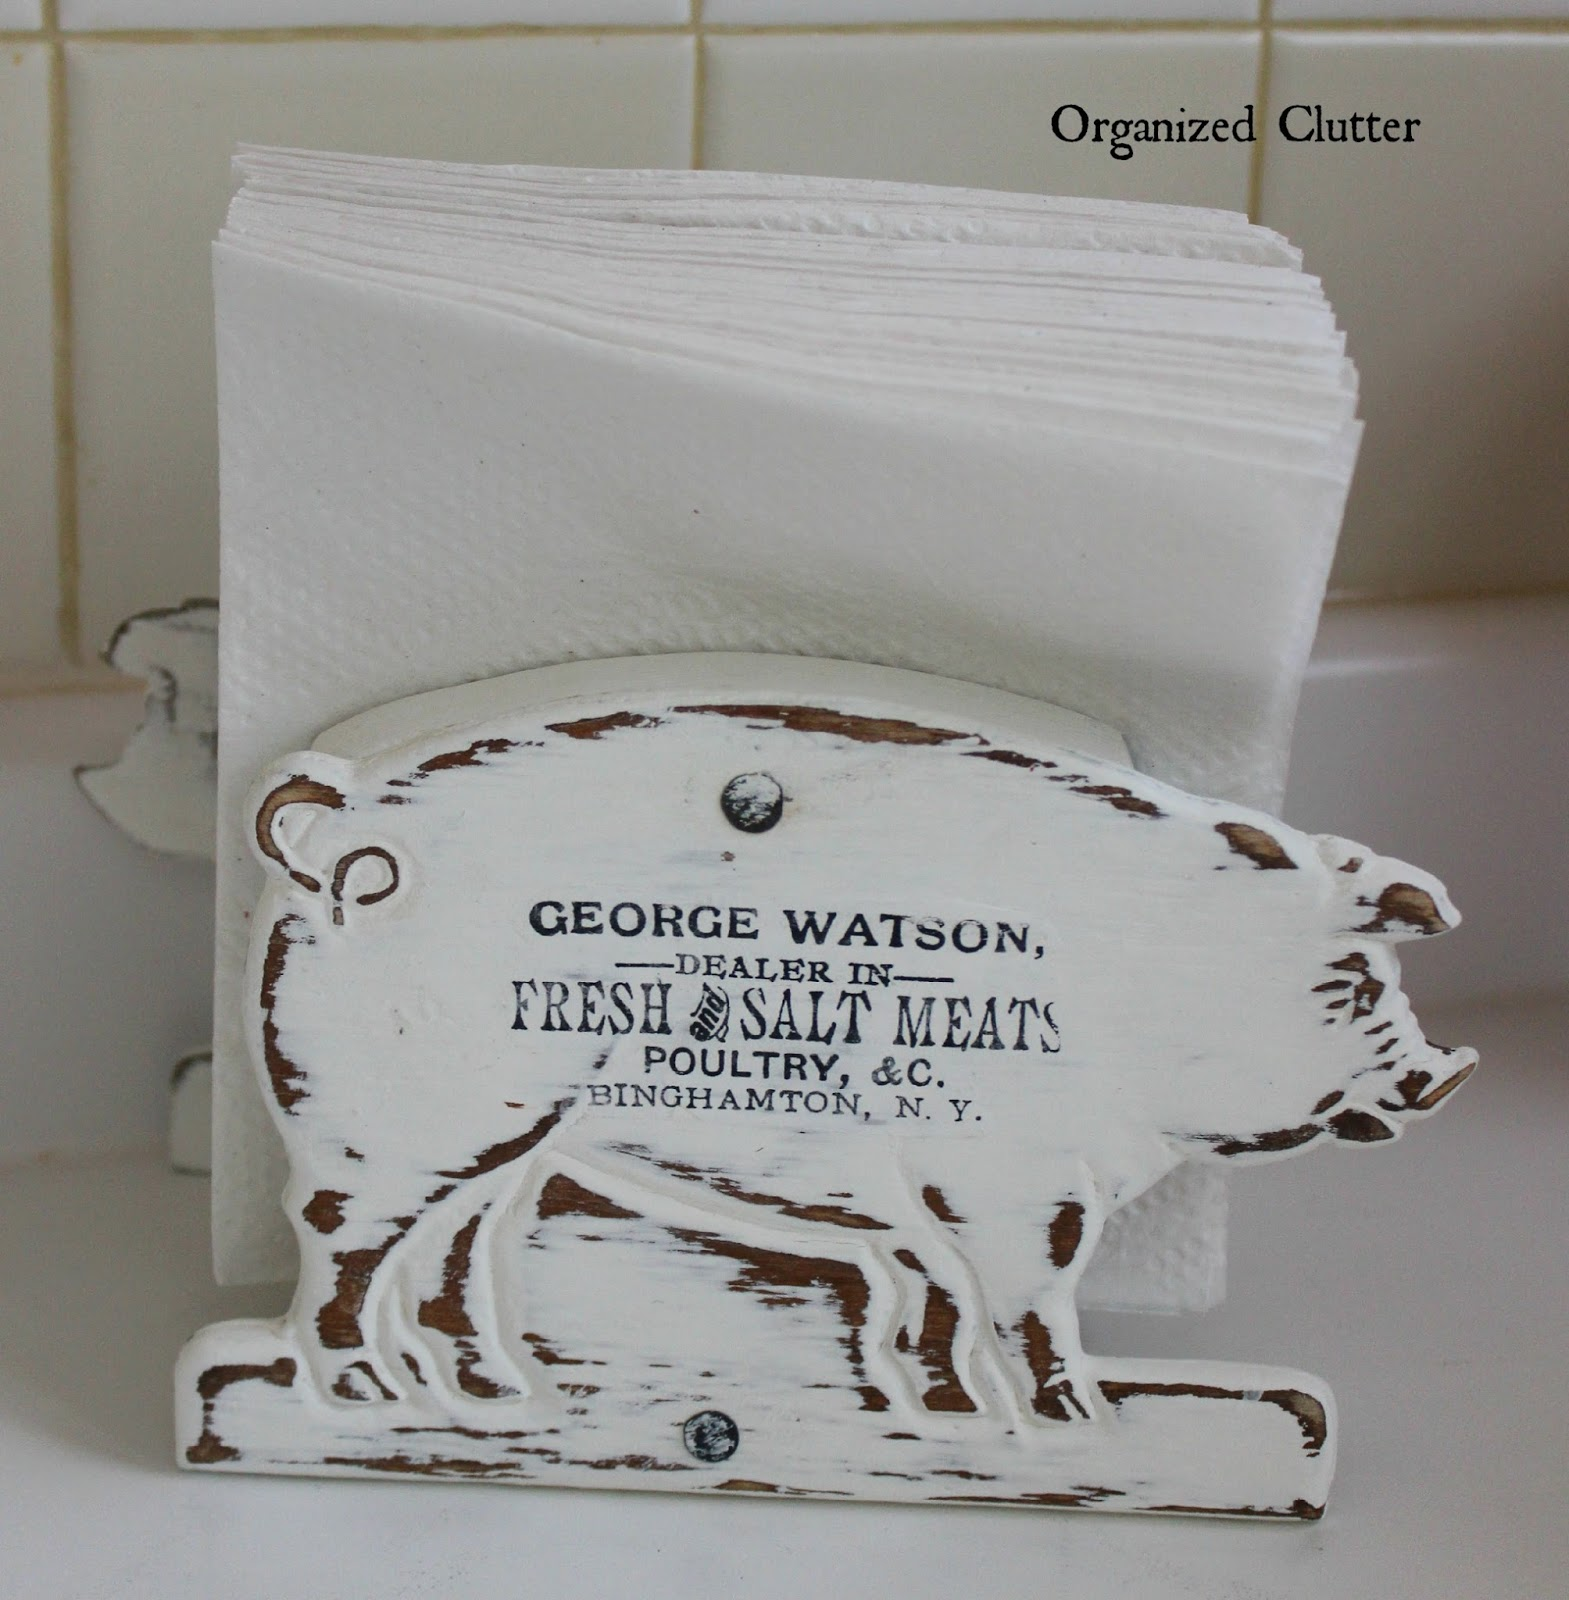 Farmhouse Hand Towel Holder Easy Projects And Ideas For A Farmhouse Kitchen Organized